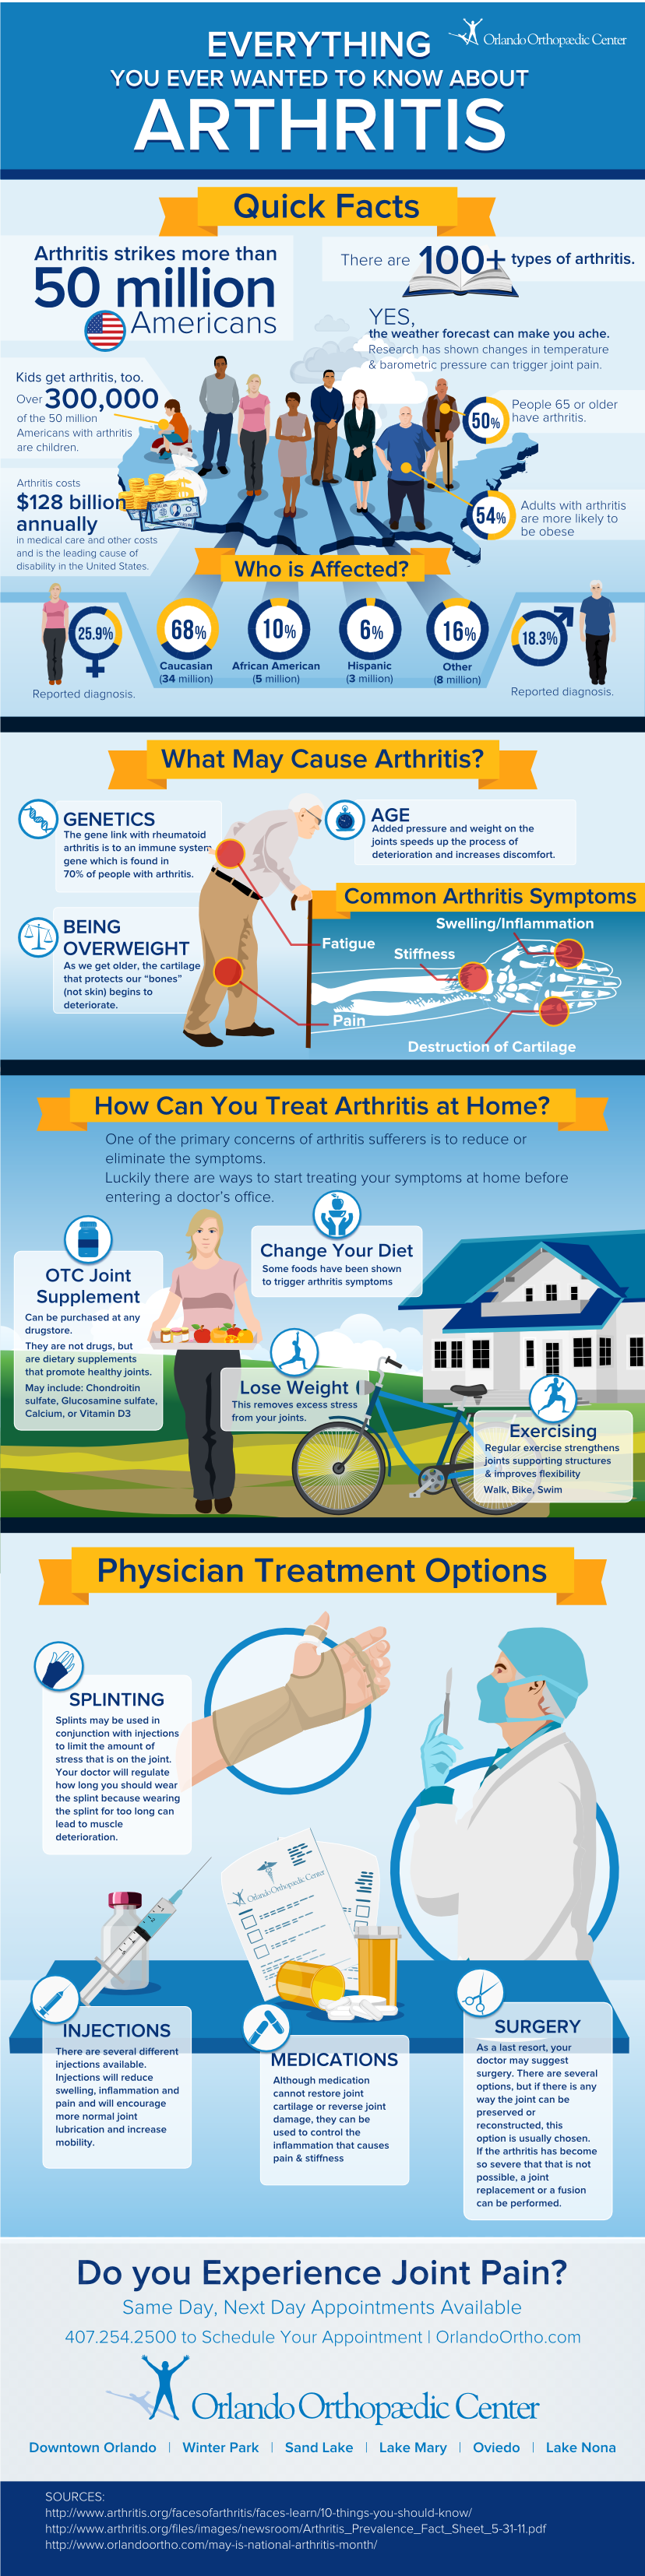 Arthritis: Important Facts You Need To Know About It Infographic